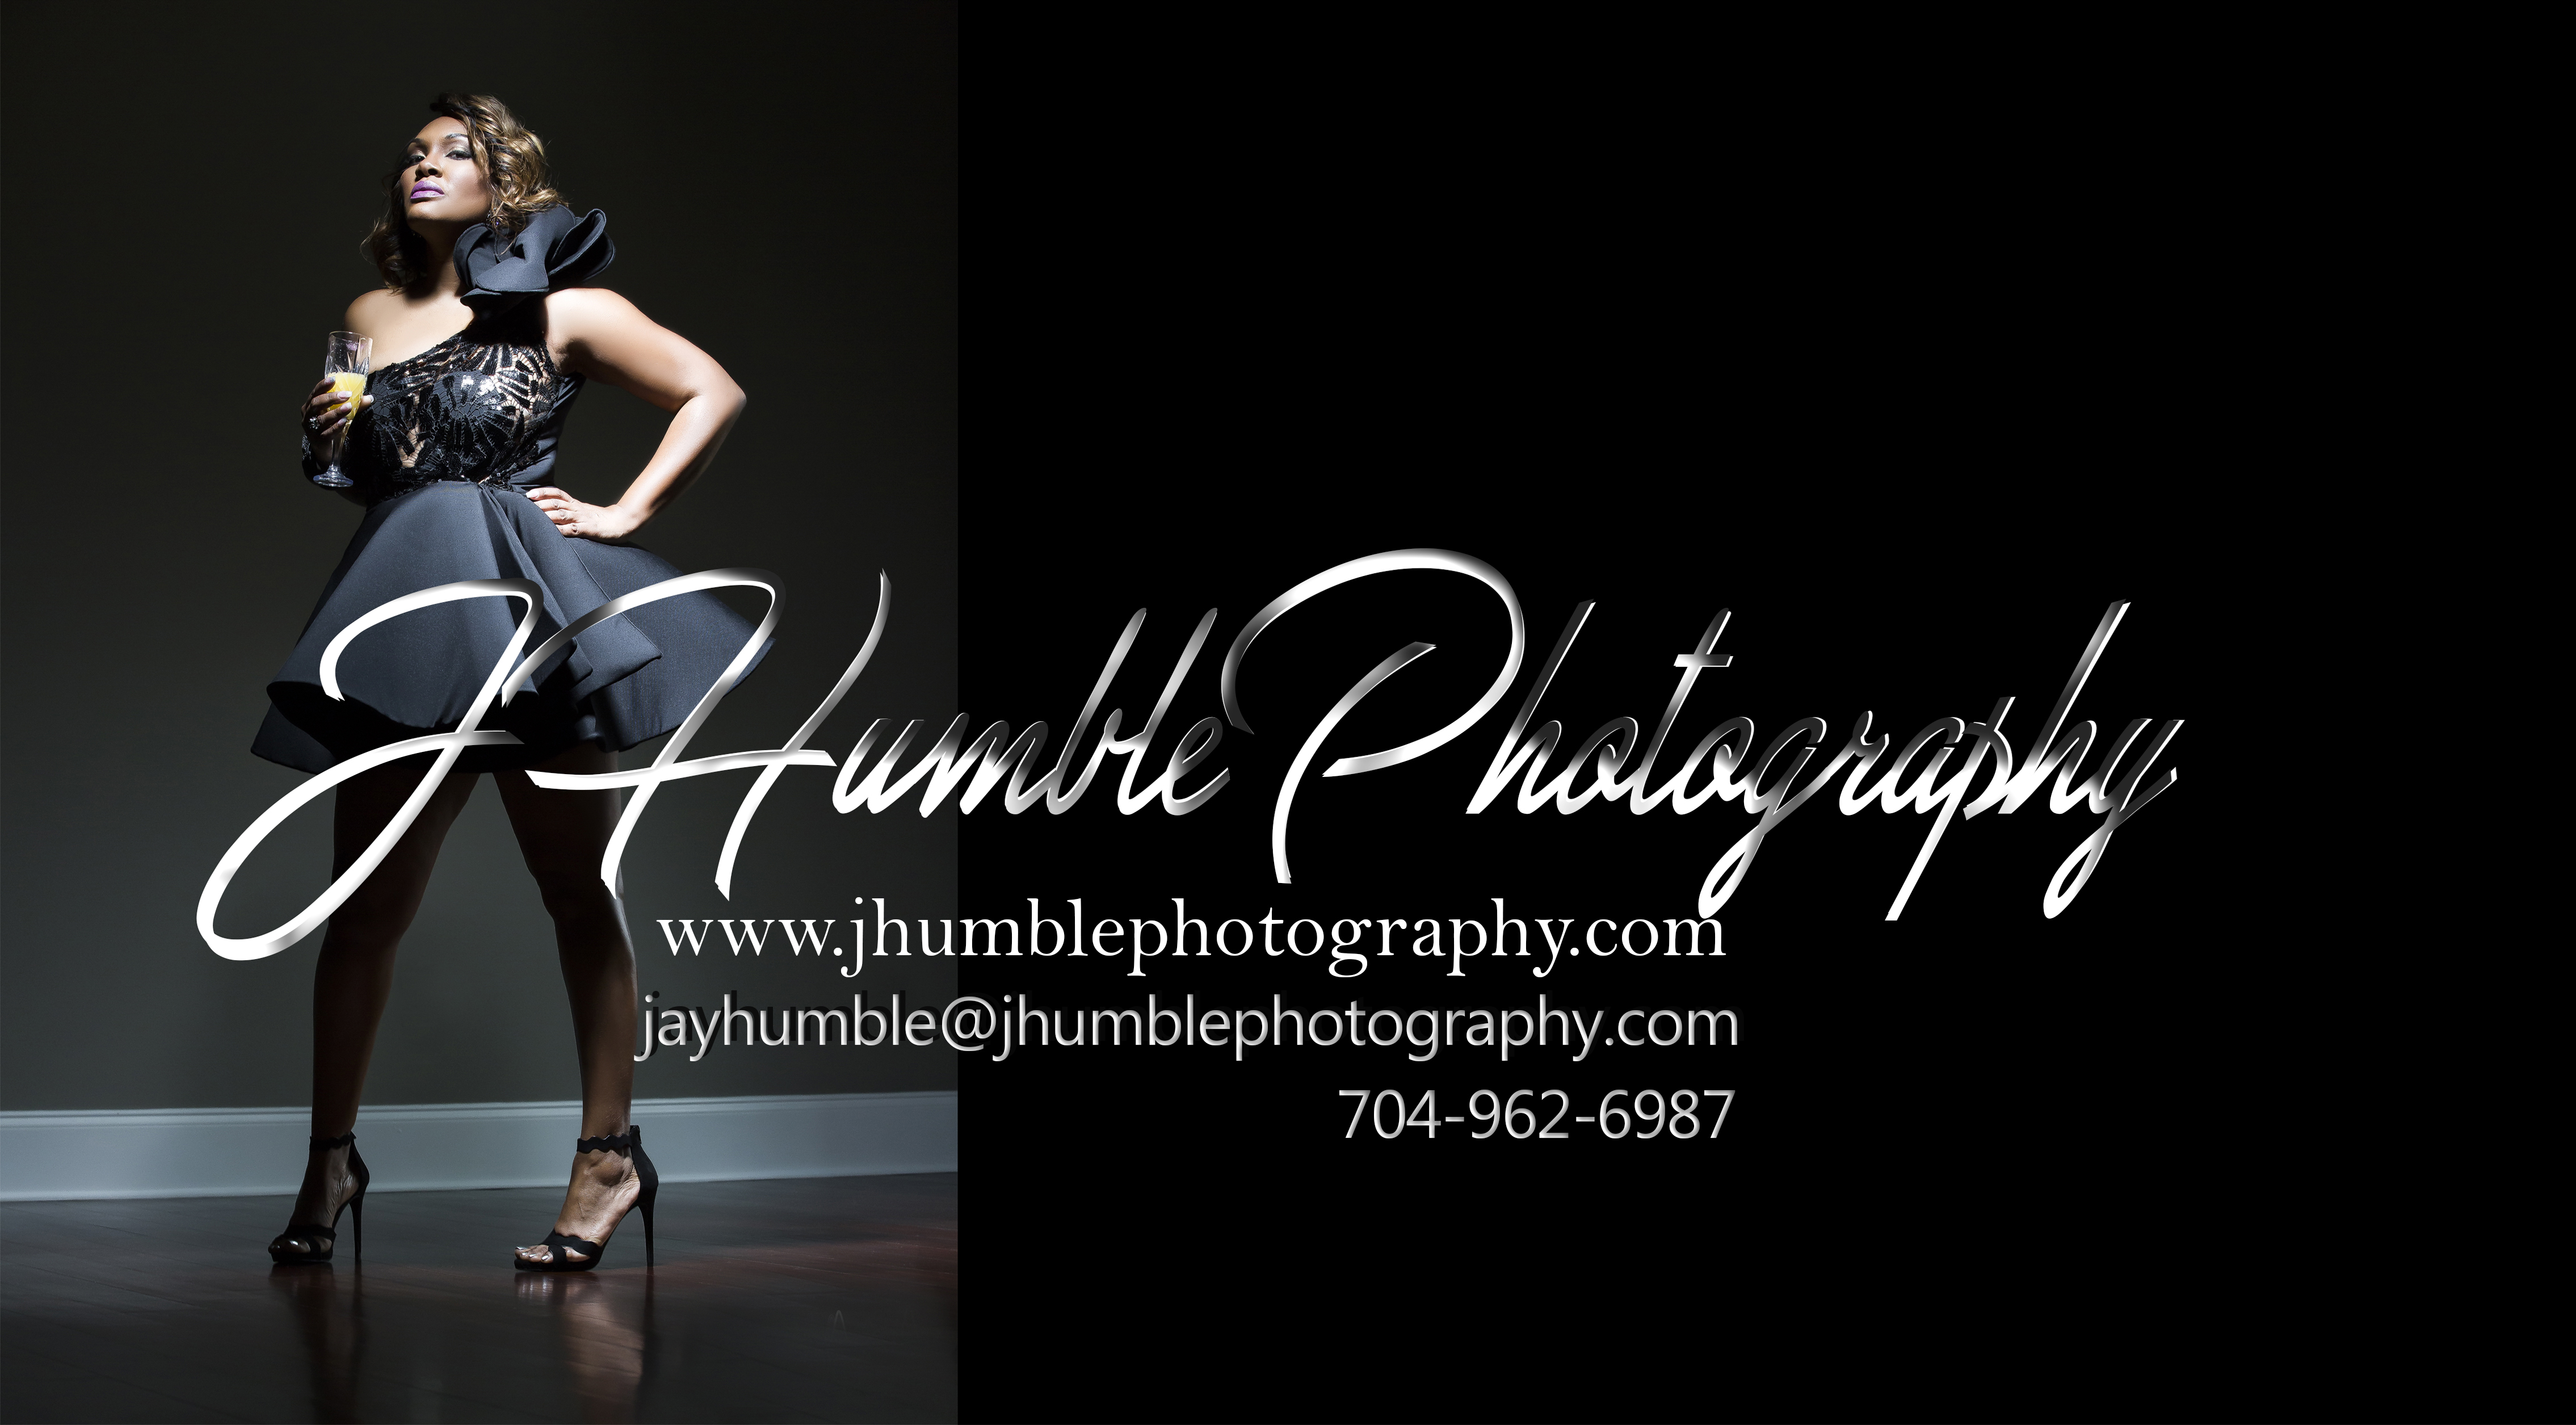 Jhumbelphotography